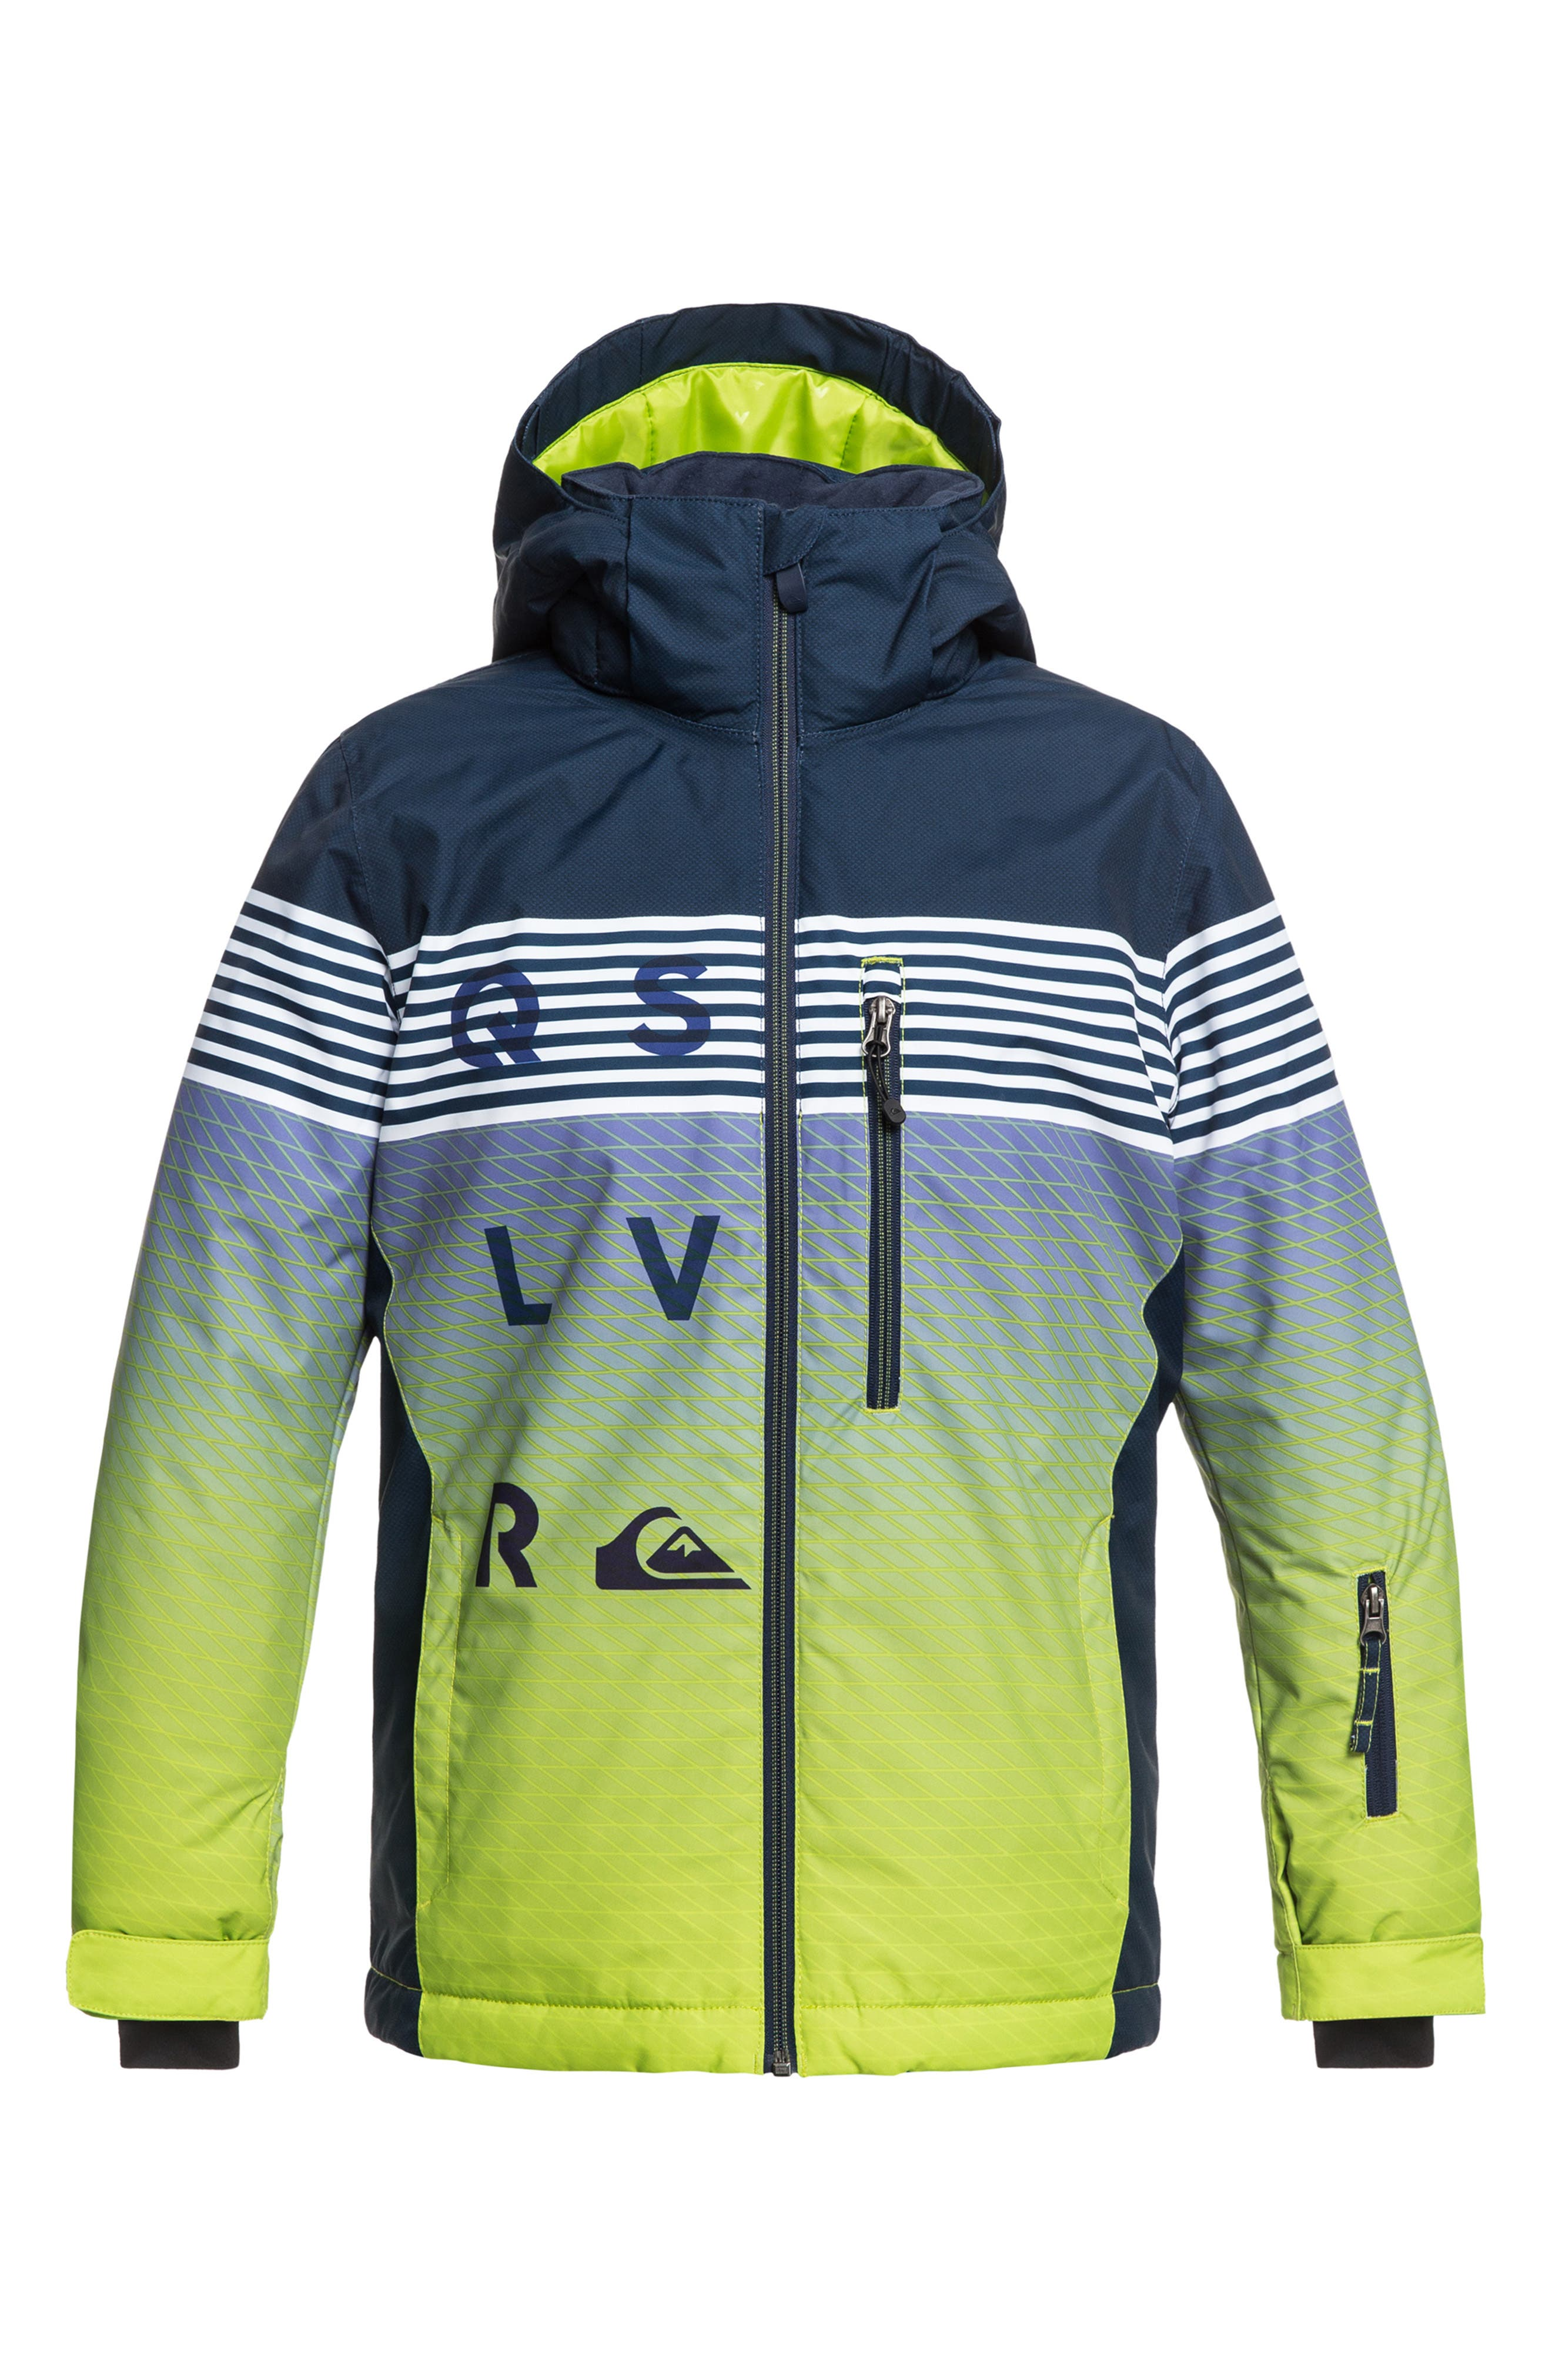 Boys Quiksilver Mission Engineered Waterproof Insulated Jacket Size XL (16)  Green